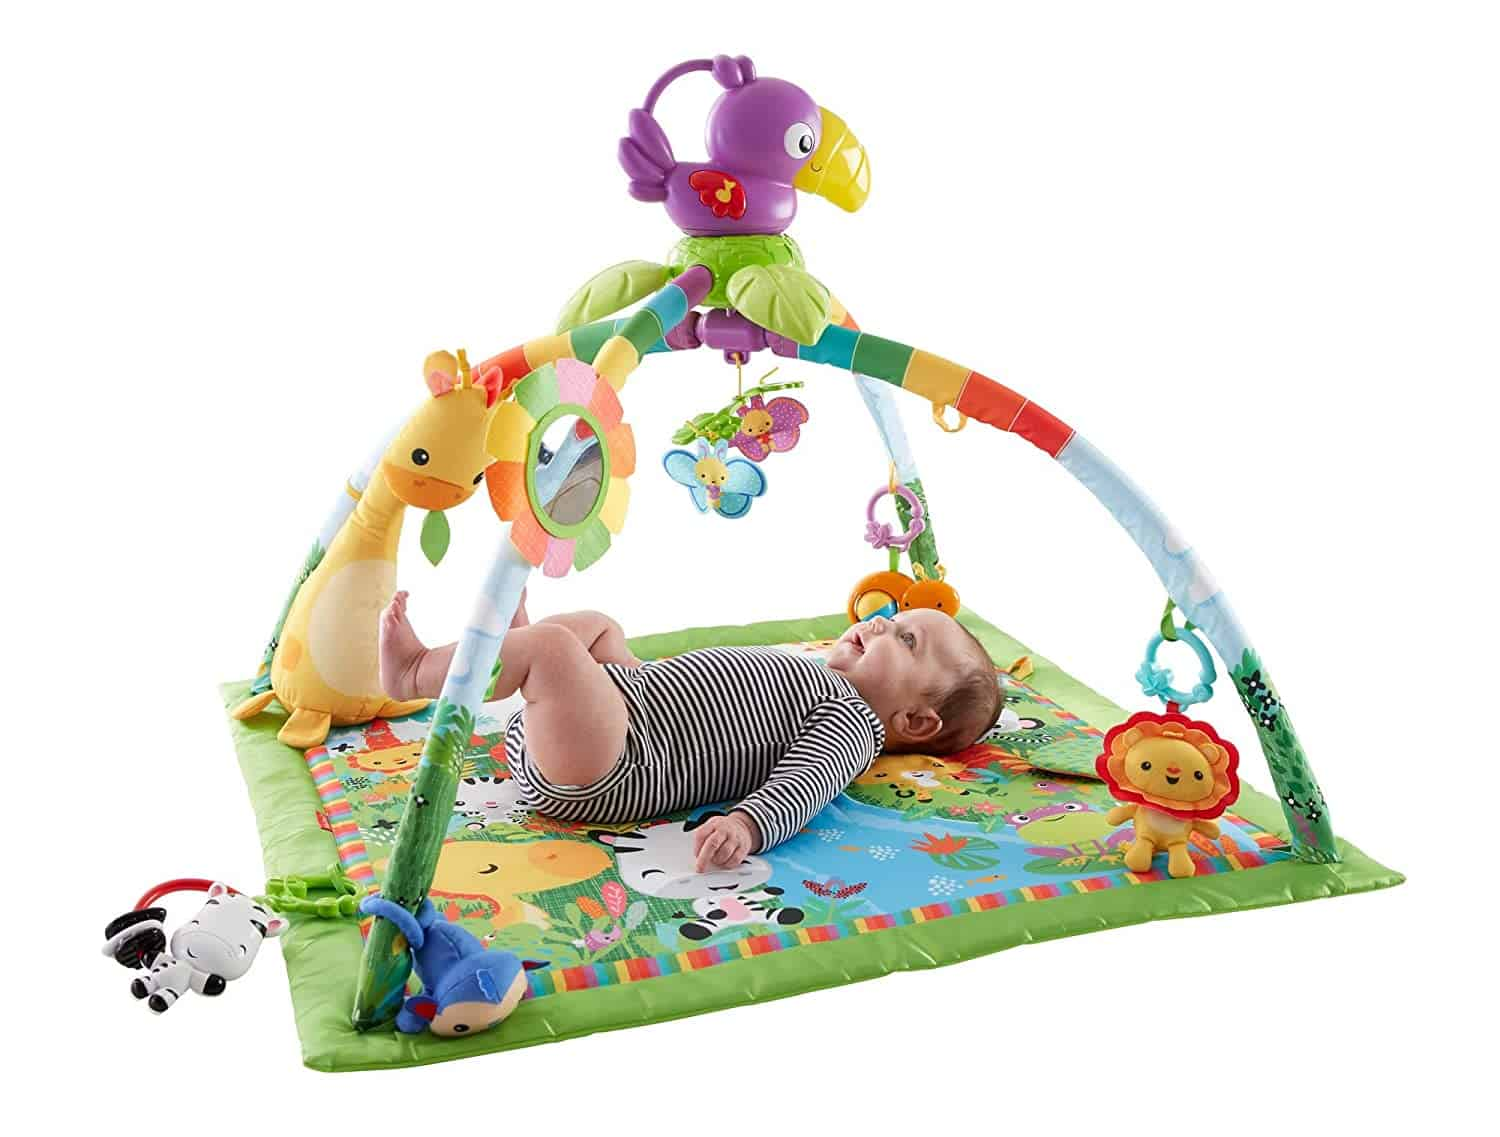 Leukste jungle babygym: Fisher-Price Rainforest Speeldeken